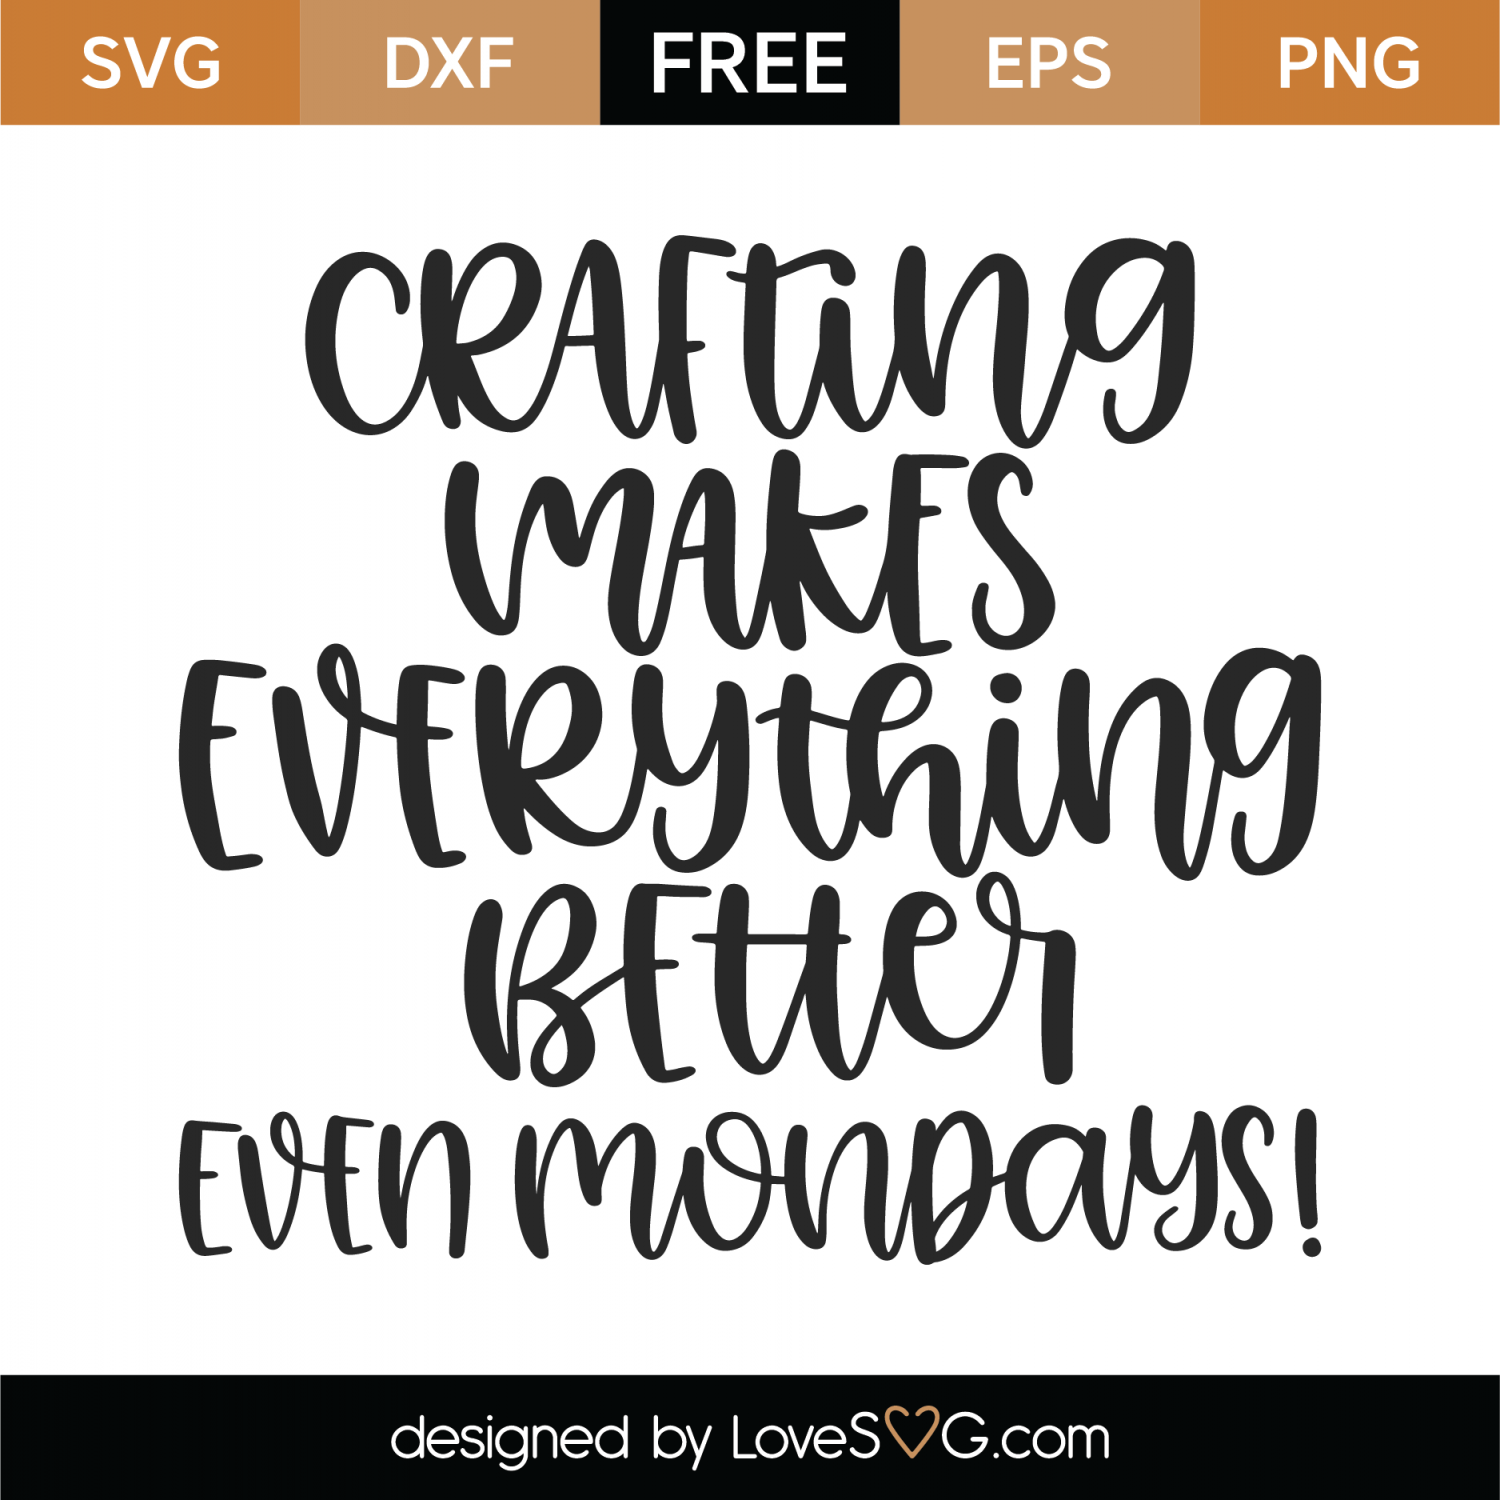 Free Crafting Makes Everything Better Even Mondays SVG Cut